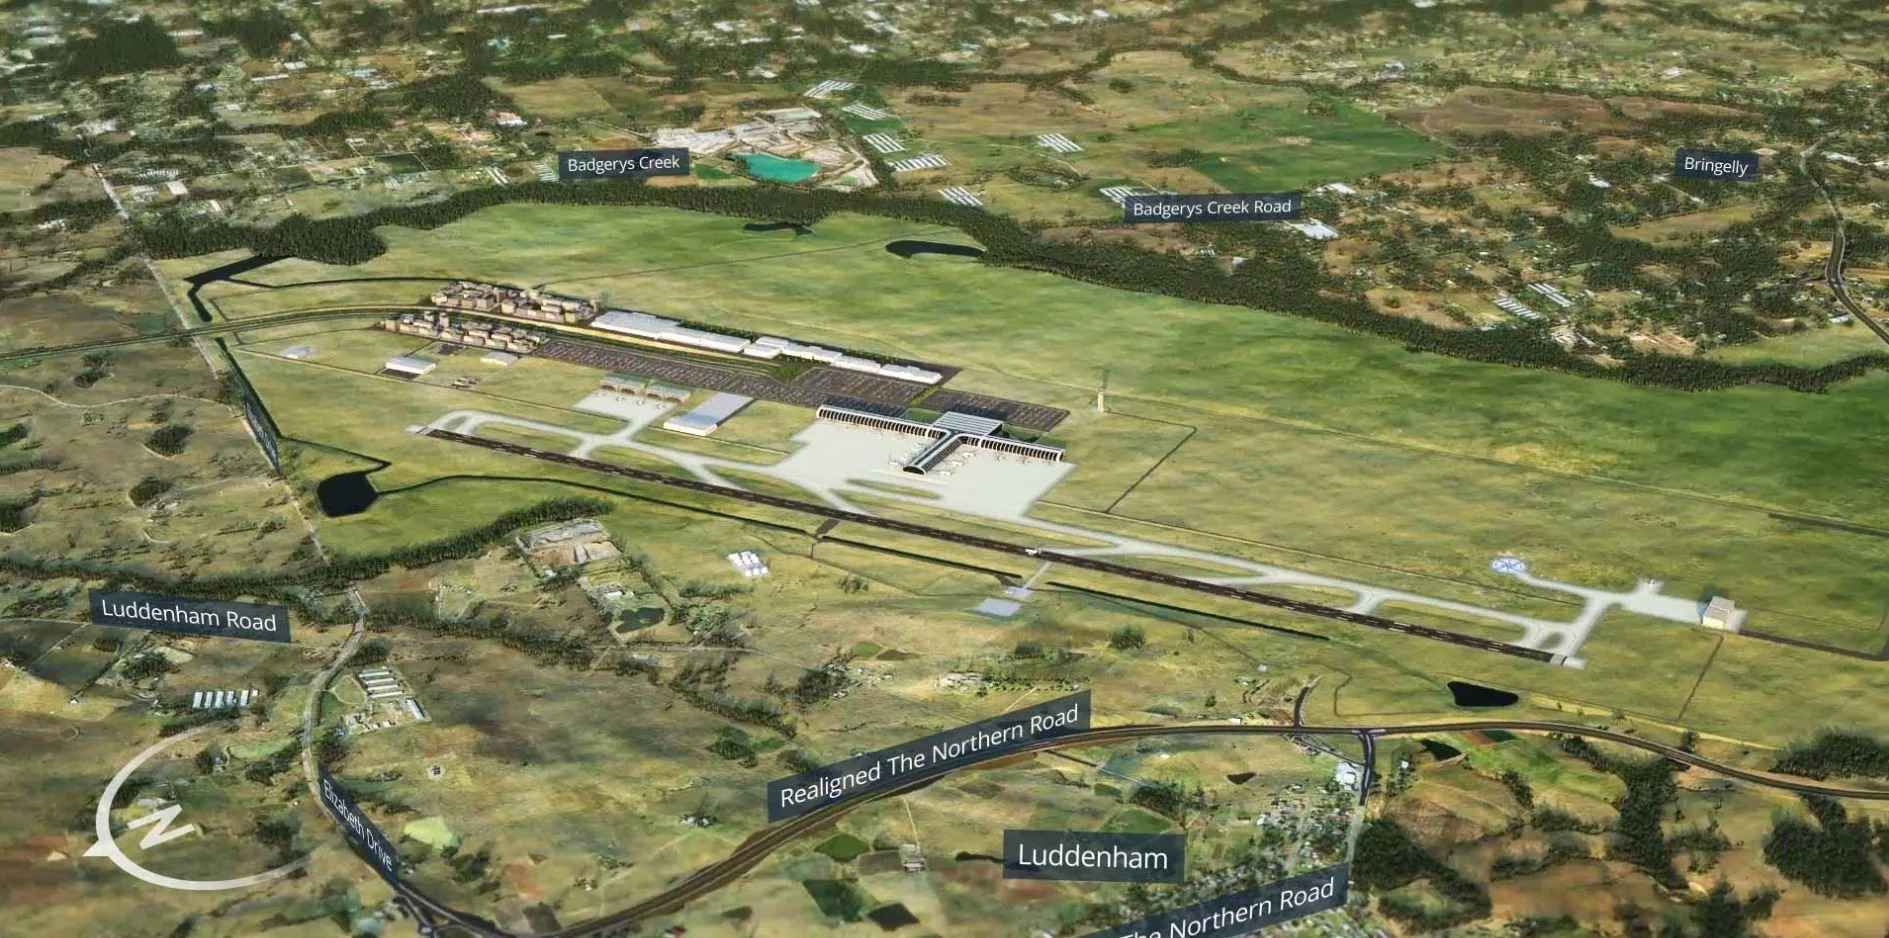 Badgerys Creek Airport